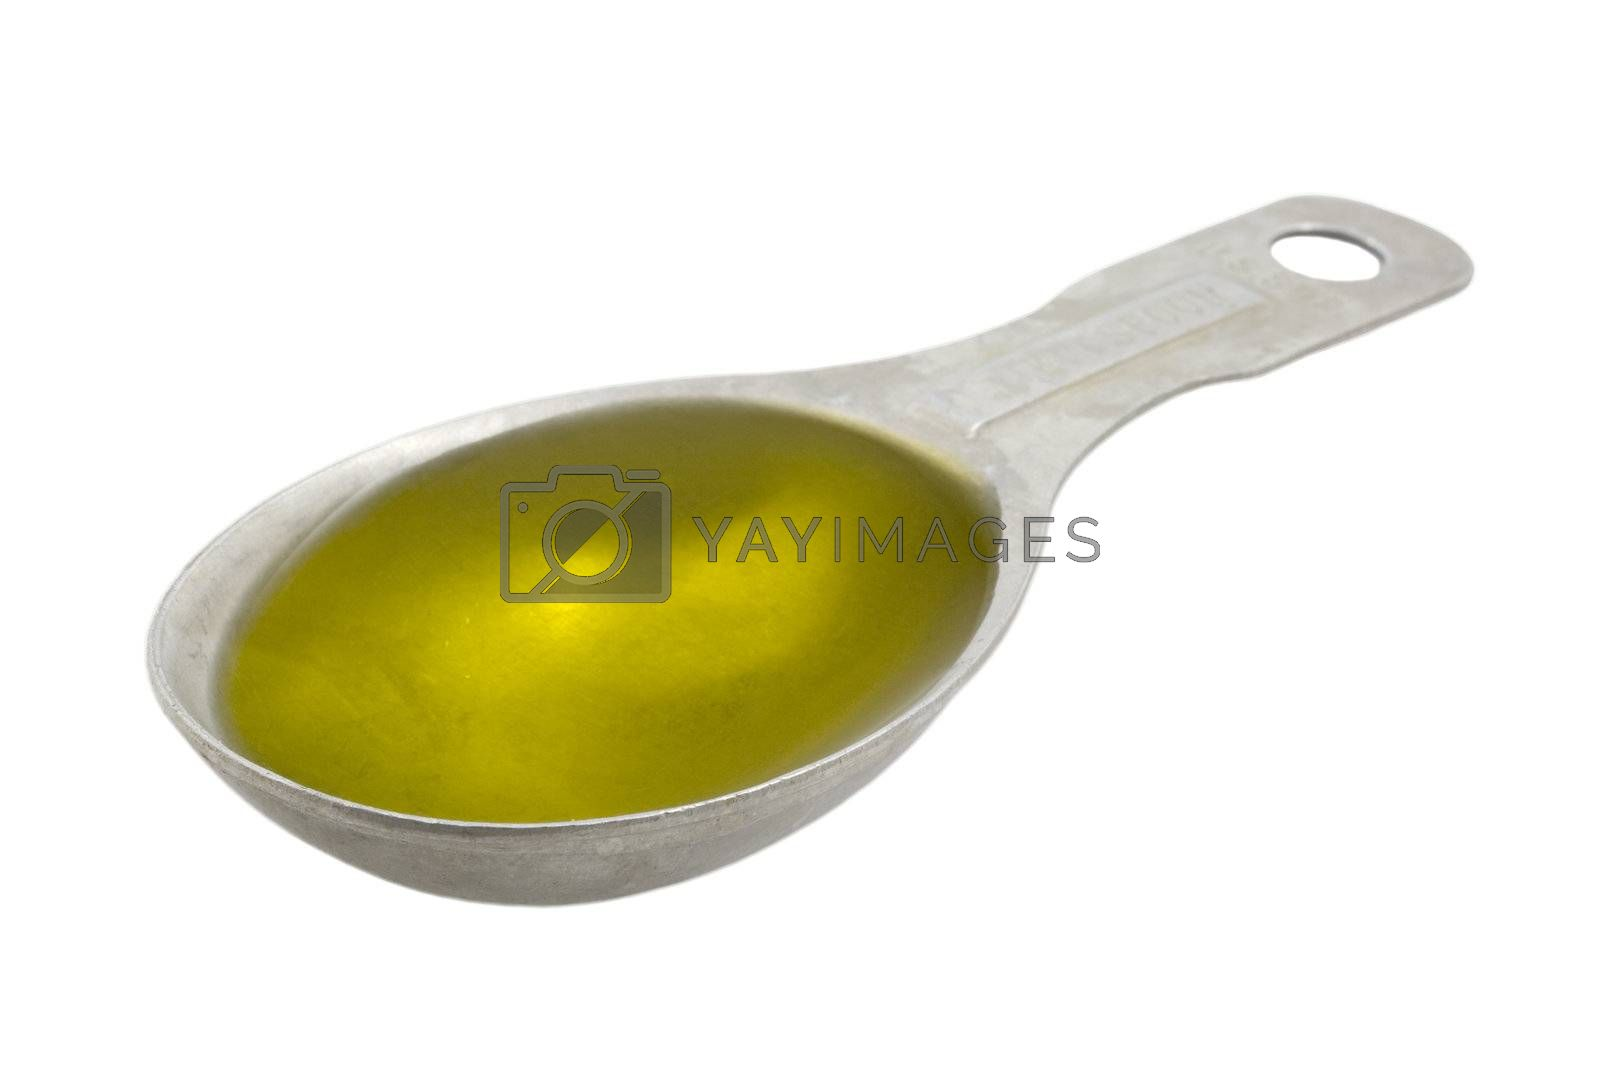 Measuring tablespoon of olive oil by PixelsAway